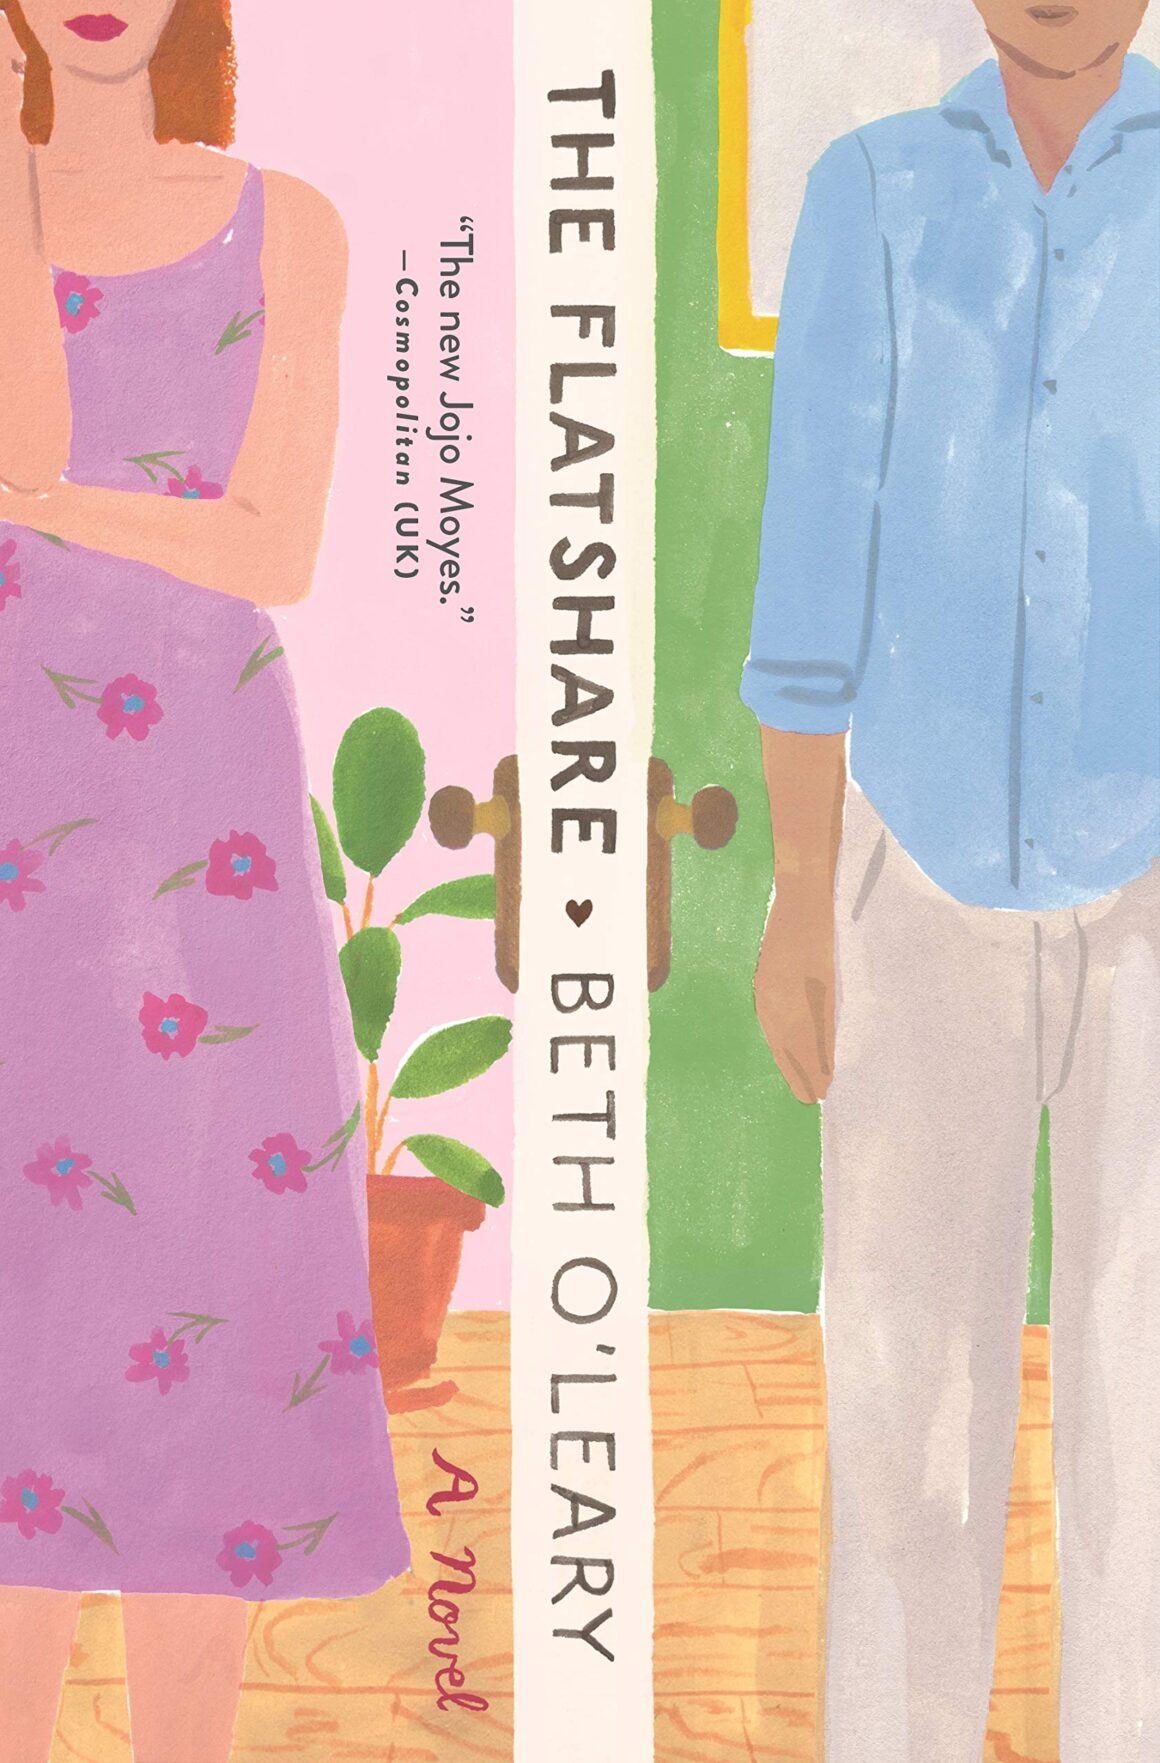 Review of The Flatshare by Beth O'Leary, a popular booktok recommendation that didn't live up to the hype.